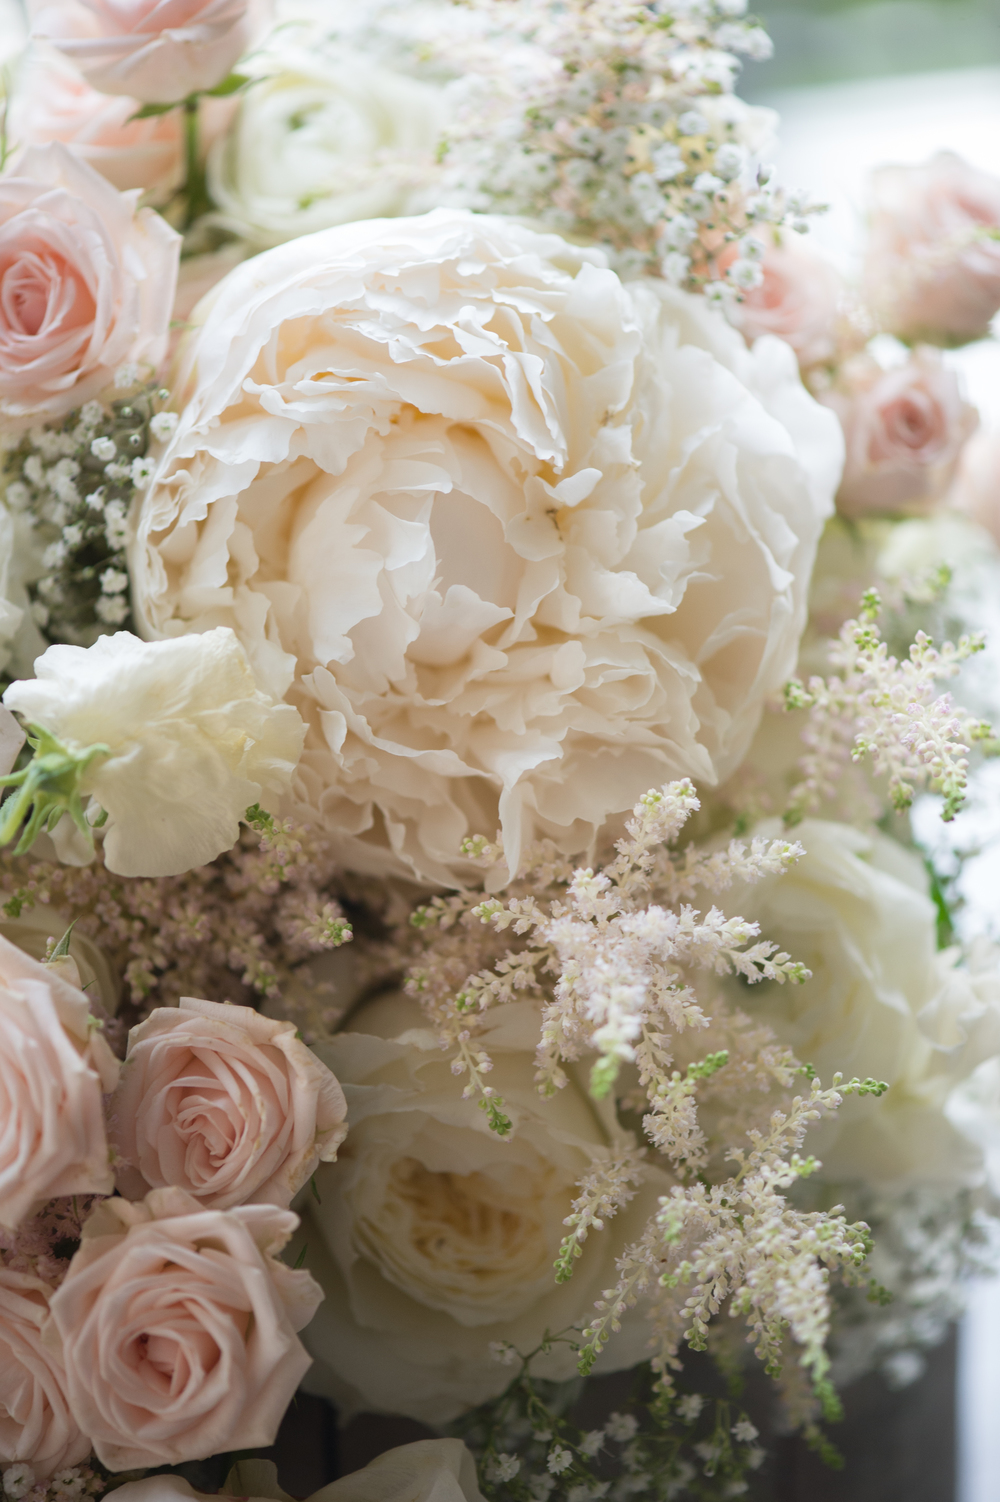 Blush Florals (Photo Credit: Amberlee Christey Photography)